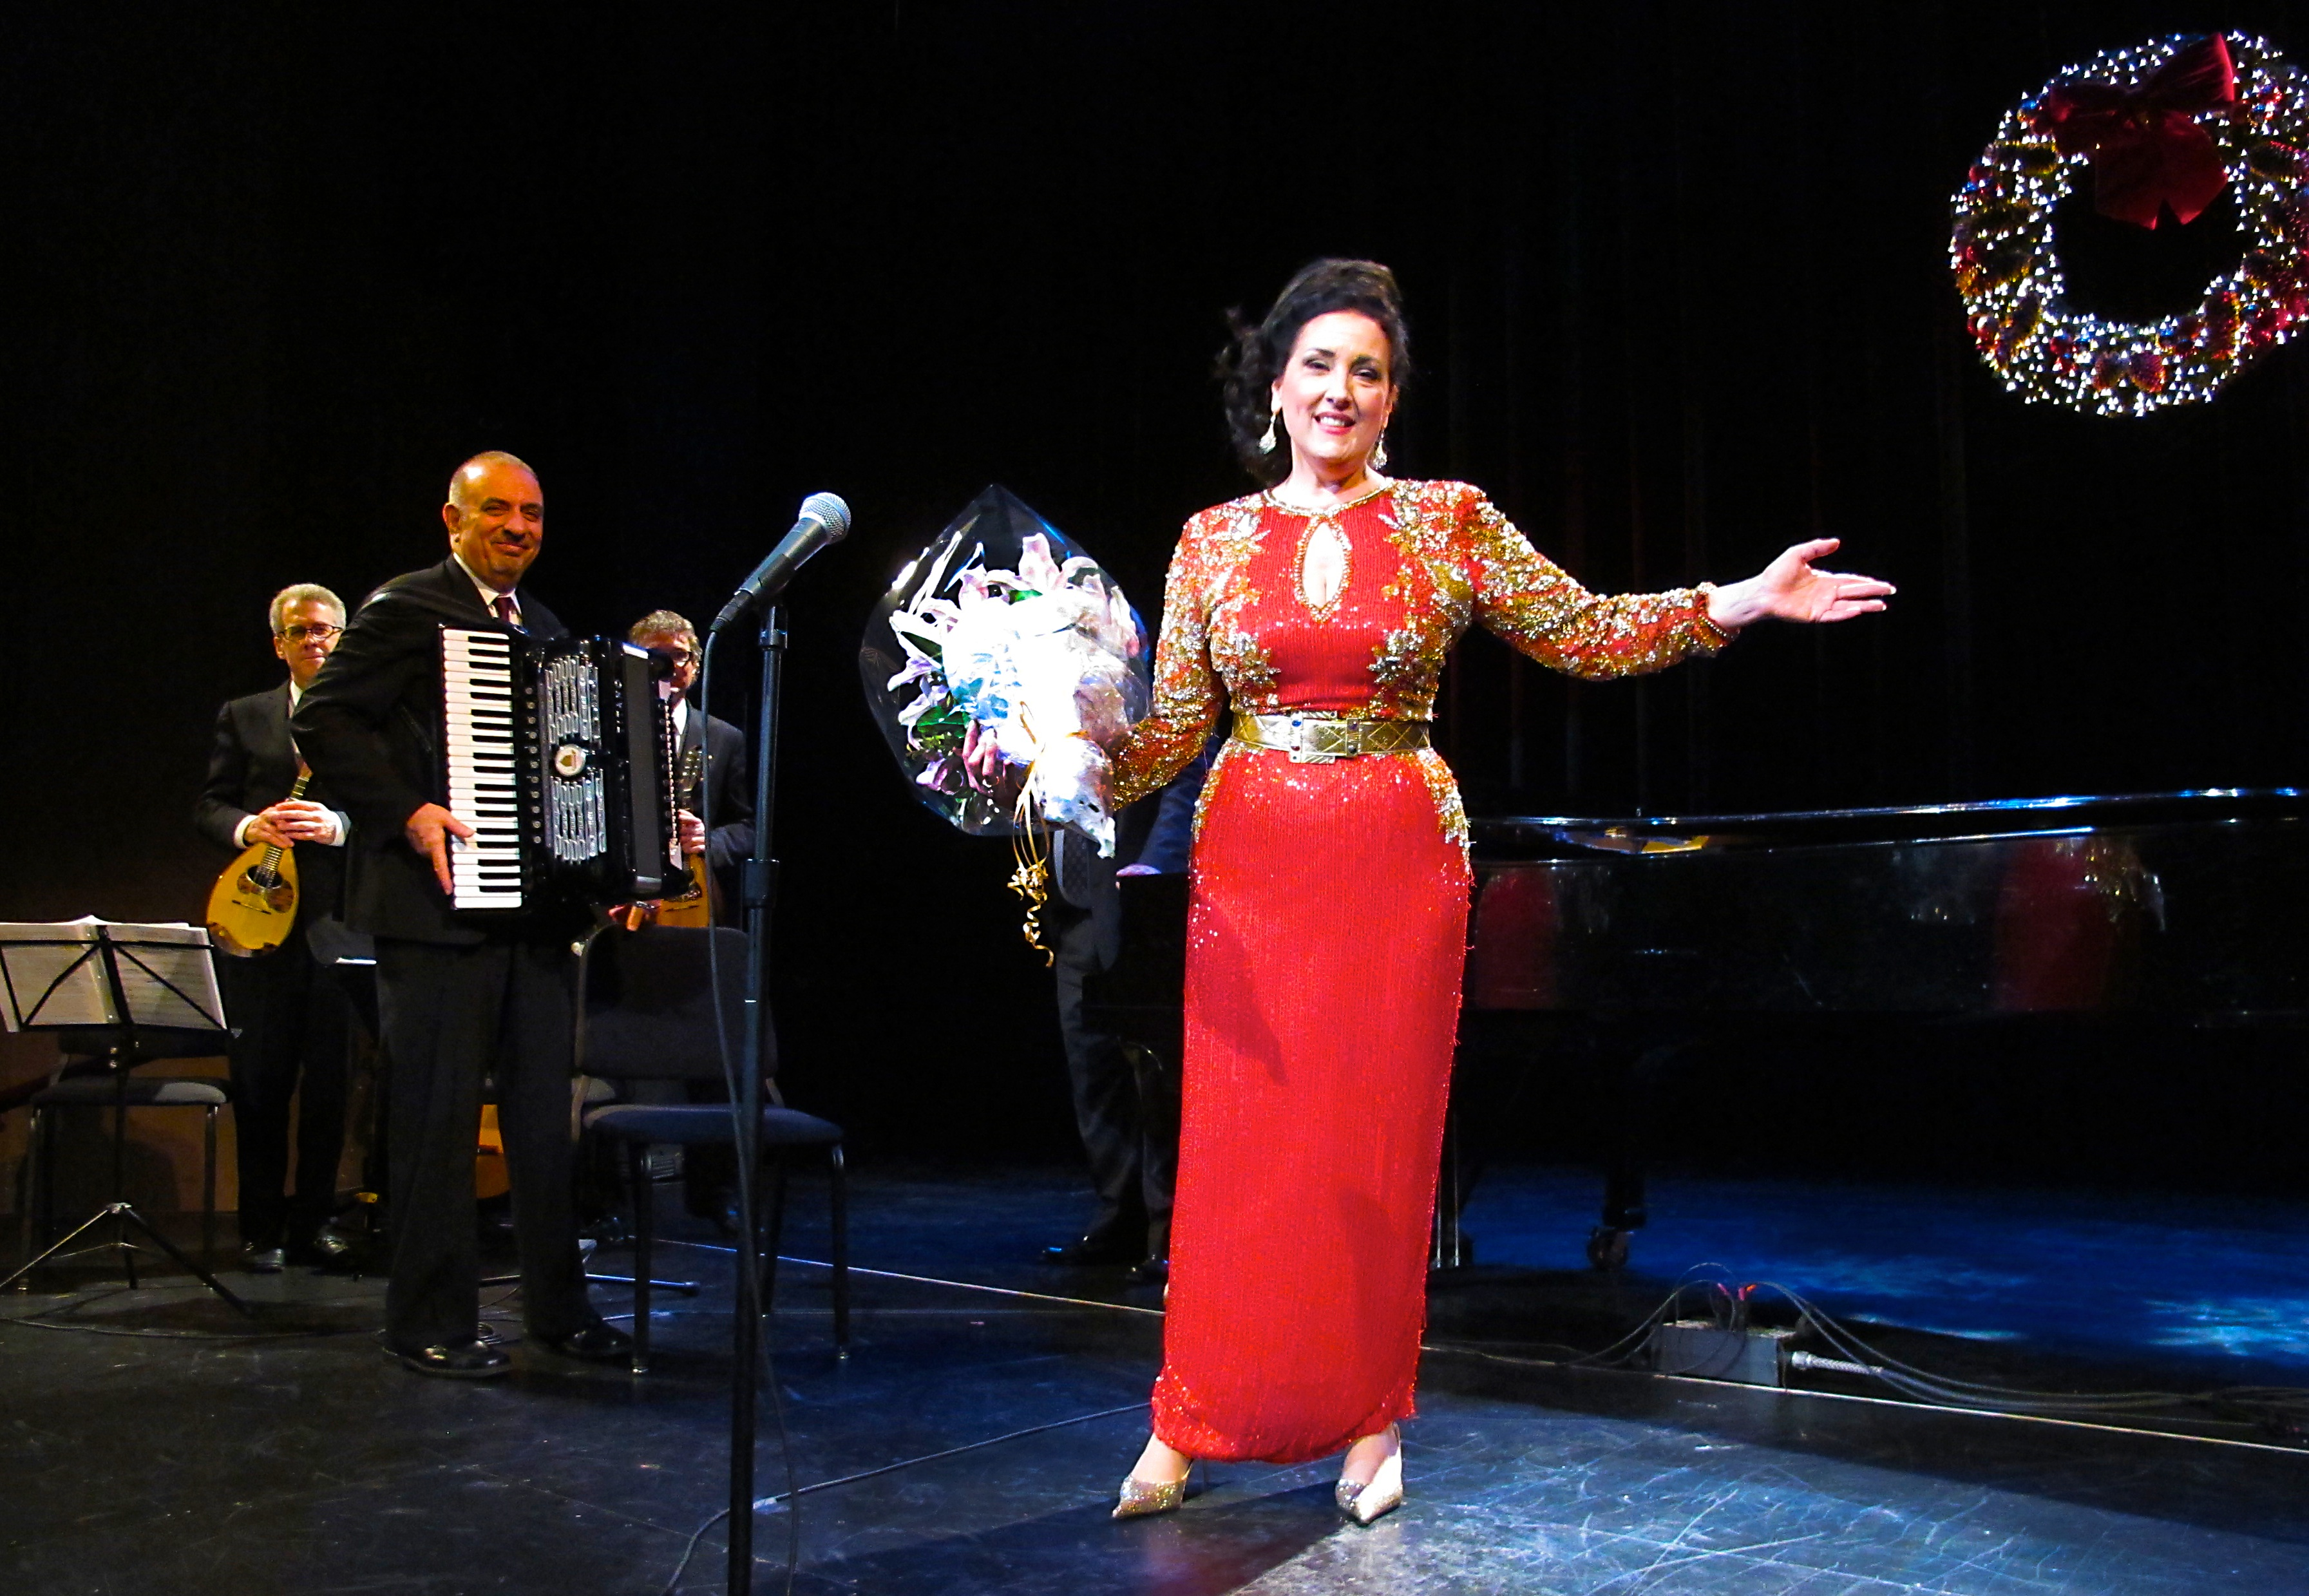 Award-winning Singer Cristina Fontanelli and musicians